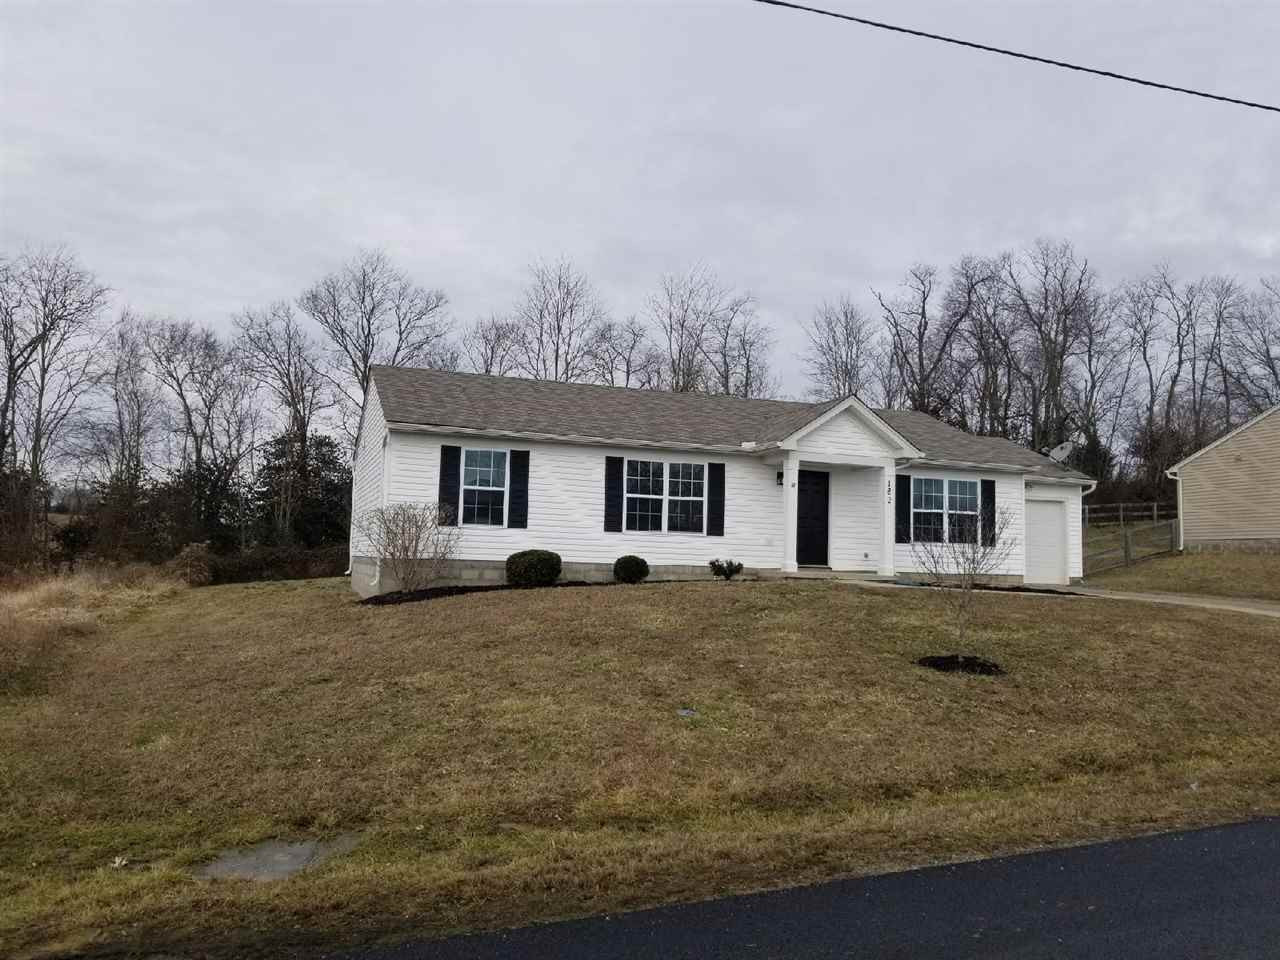 Photo 3 for 169 Willow Pointe Glencoe, KY 41046